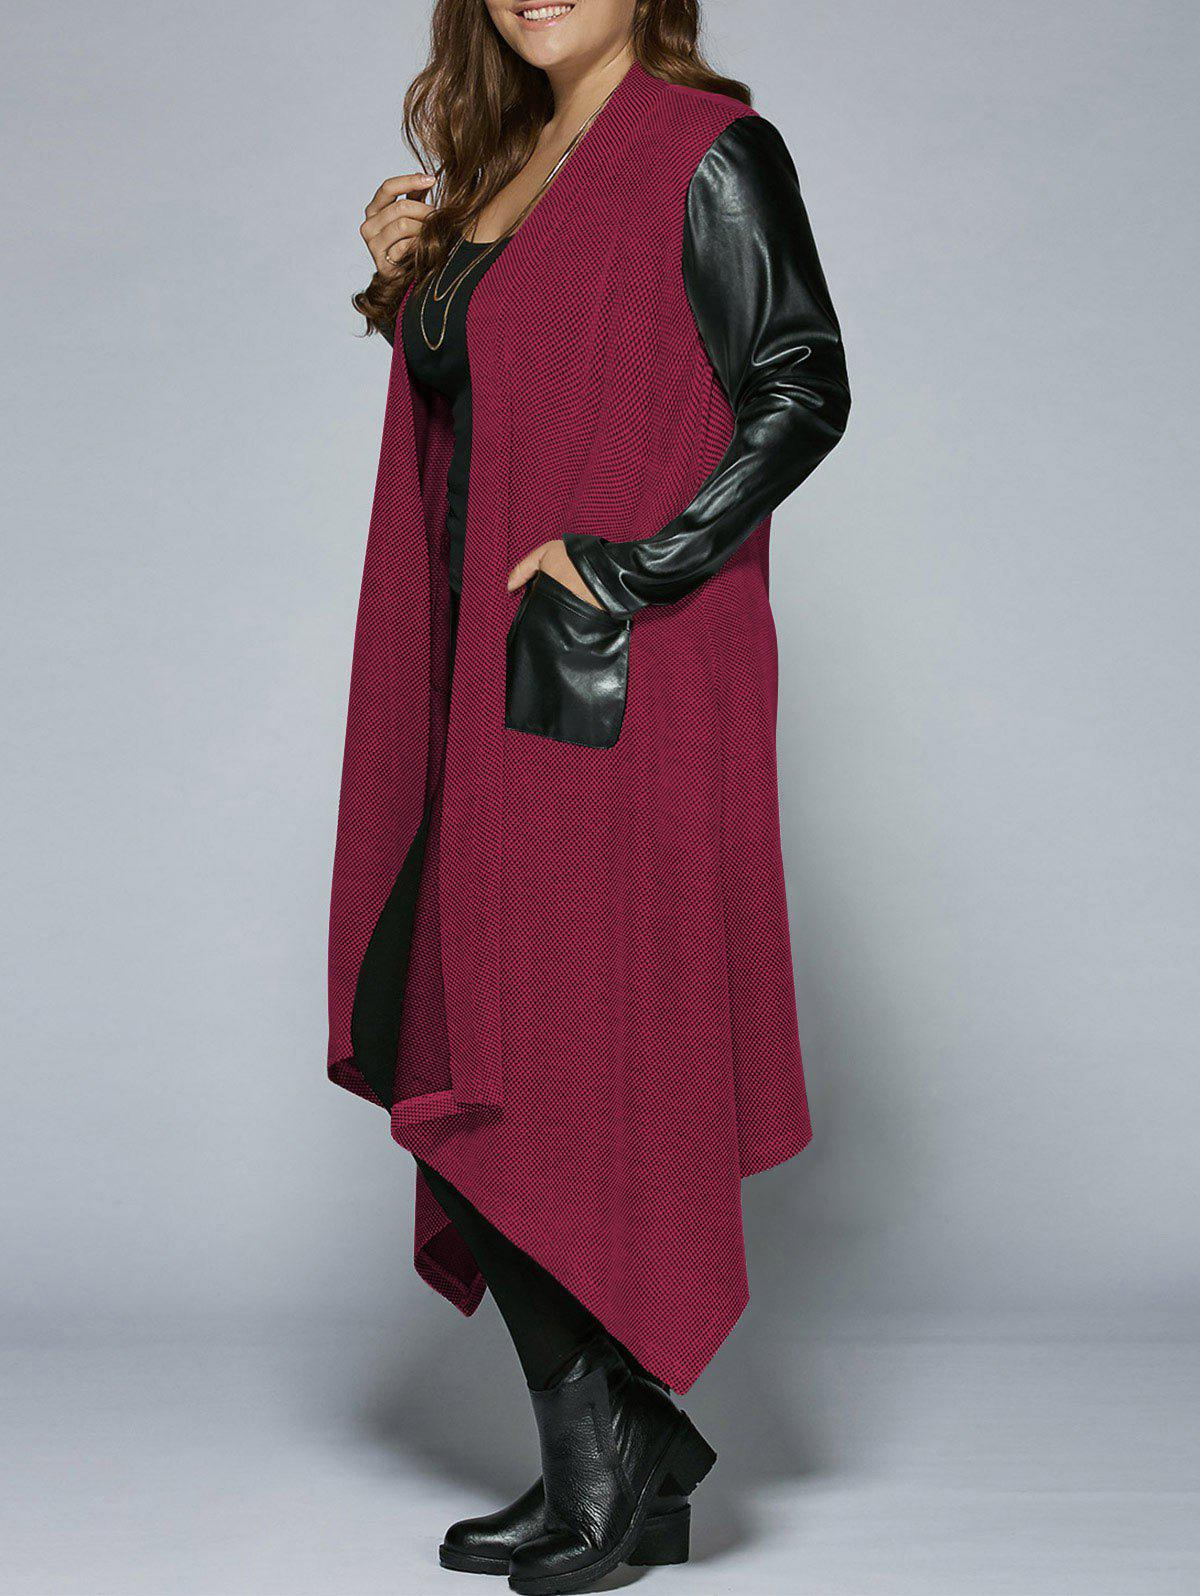 Plus Size PU Leather Trim Longline Asymmetrical CoatWOMEN<br><br>Size: 4XL; Color: RED; Clothes Type: Trench; Material: Rayon; Type: Asymmetric Length; Shirt Length: Long; Sleeve Length: Full; Collar: Collarless; Pattern Type: Solid; Embellishment: Pockets; Style: Fashion; Season: Fall,Spring; Weight: 0.5160kg; Package Contents: 1 x Coat;